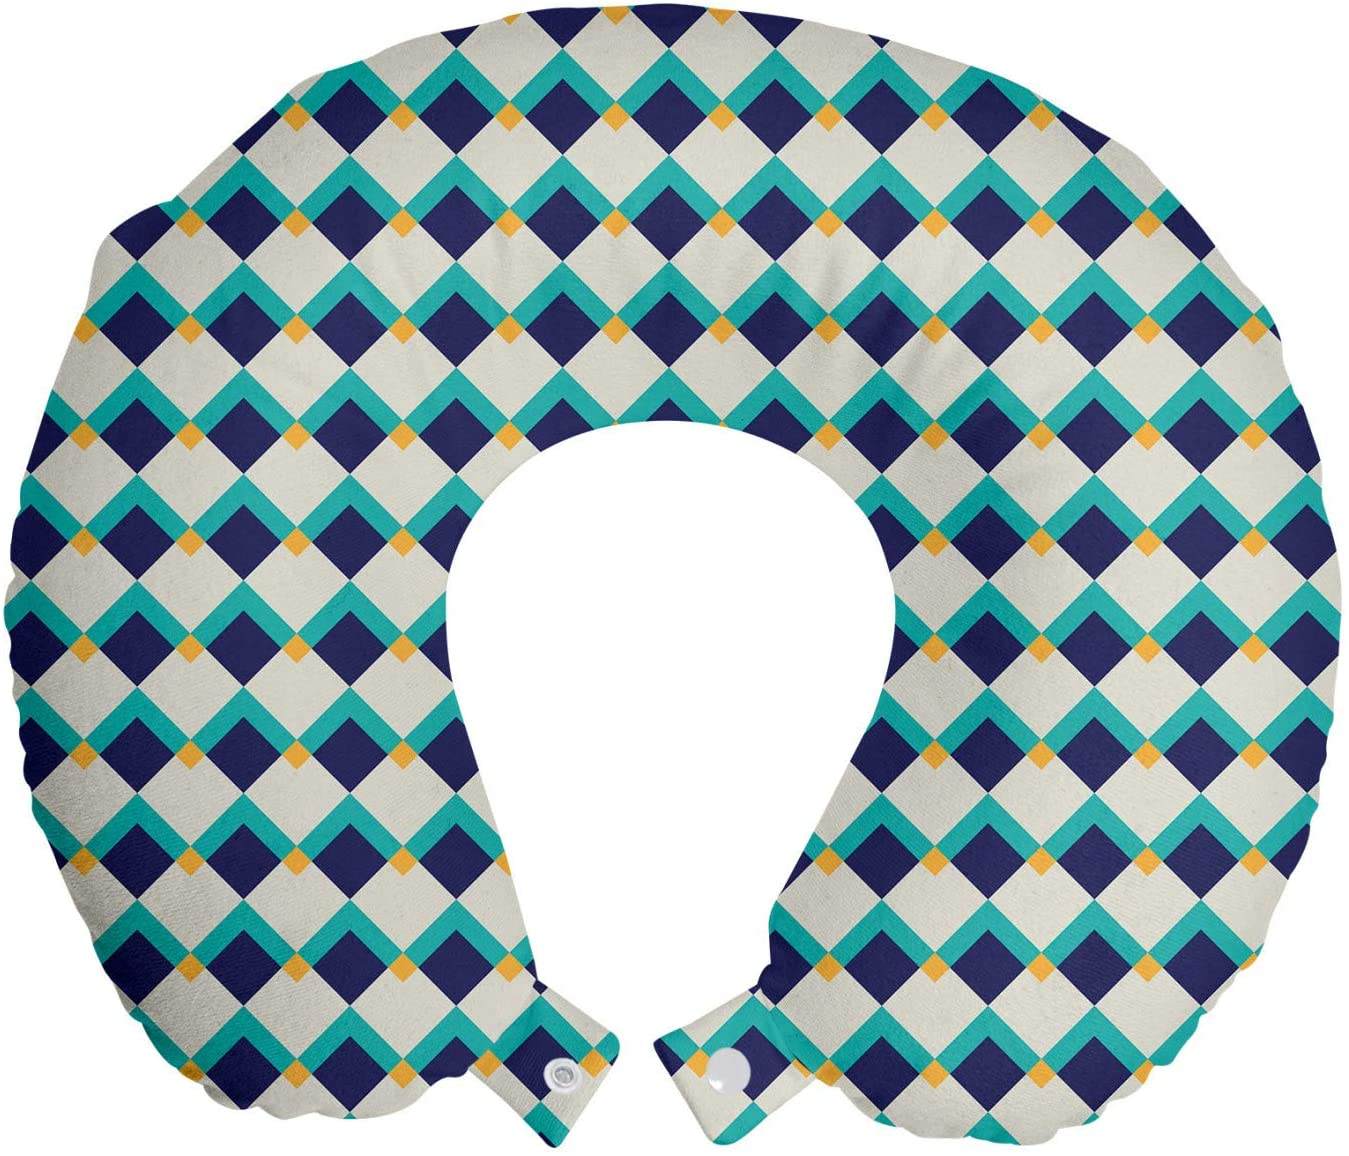 Ambesonne Abstract Travel Pillow Neck Rest, Repeating Geometric Illustration of Retro Tones, Memory Foam Traveling Accessory for Airplane and Car, 12